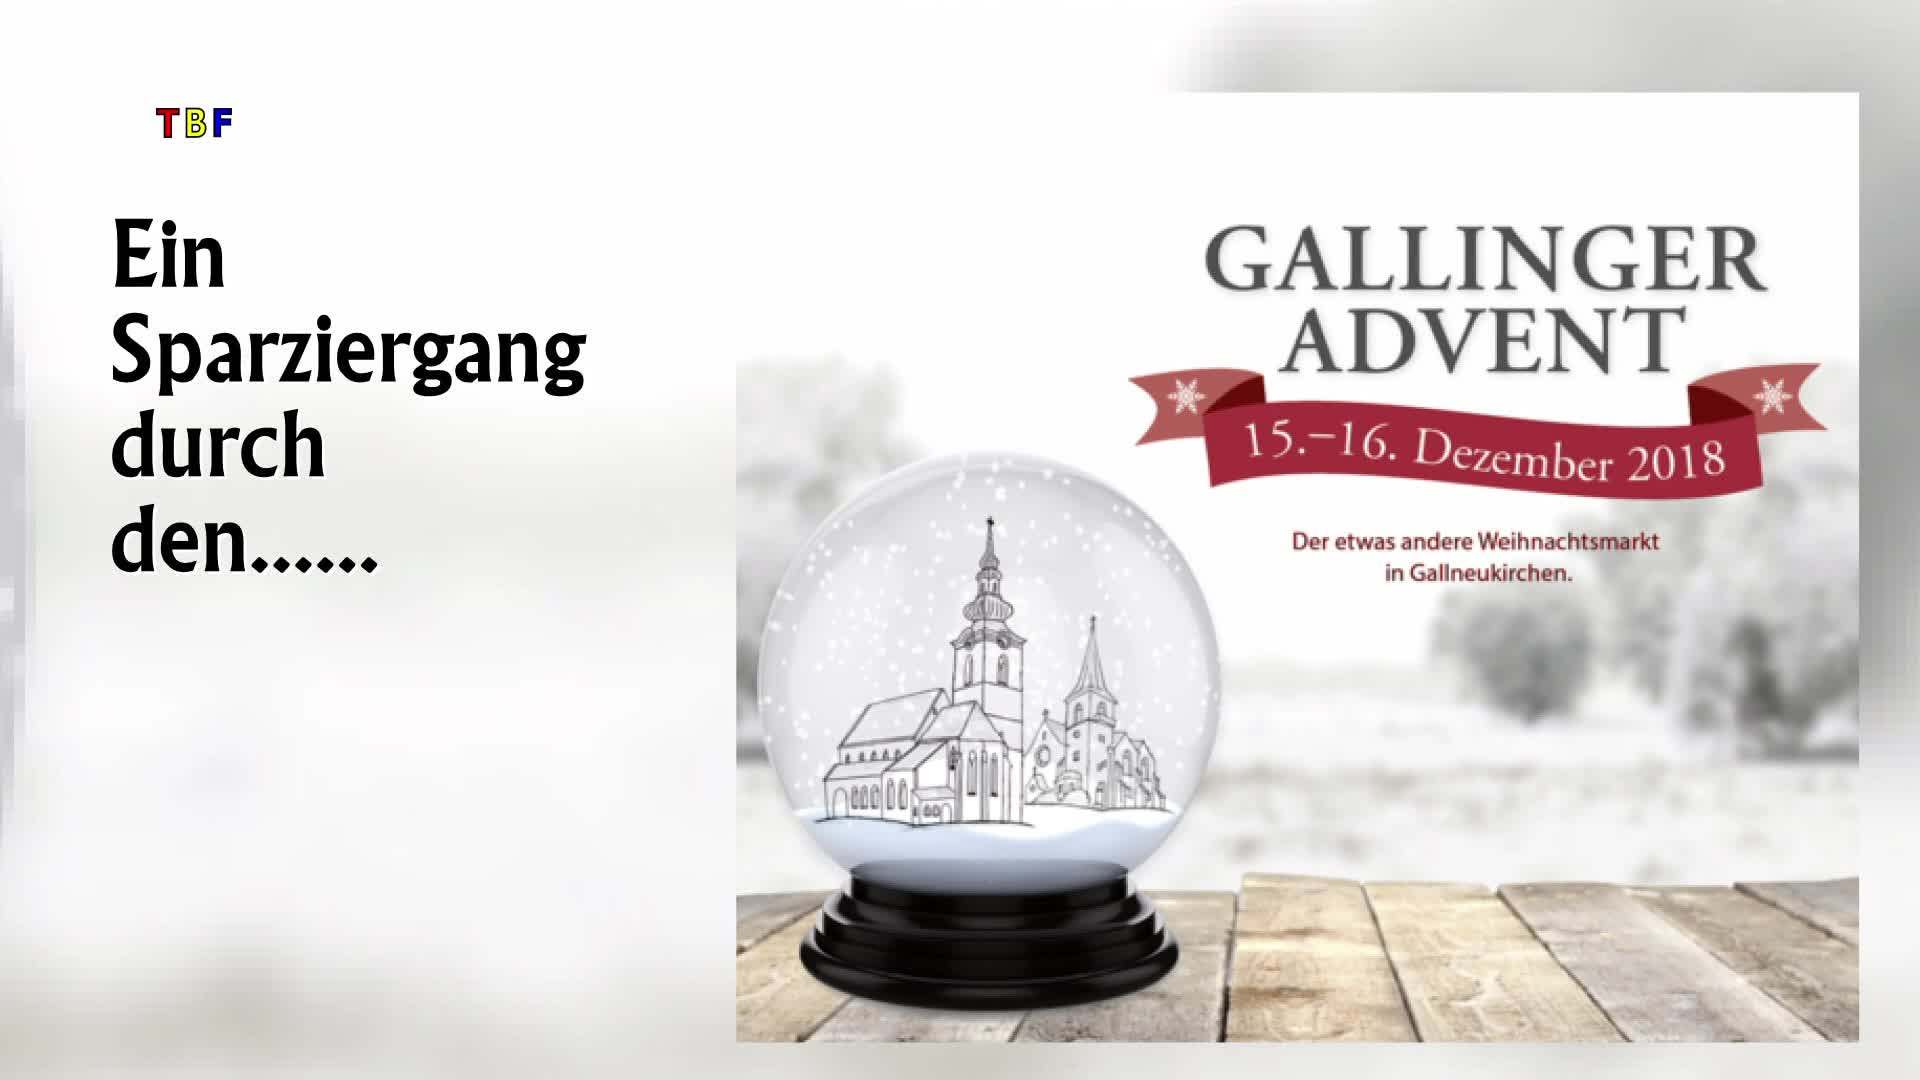 Gallinger Advent 2018